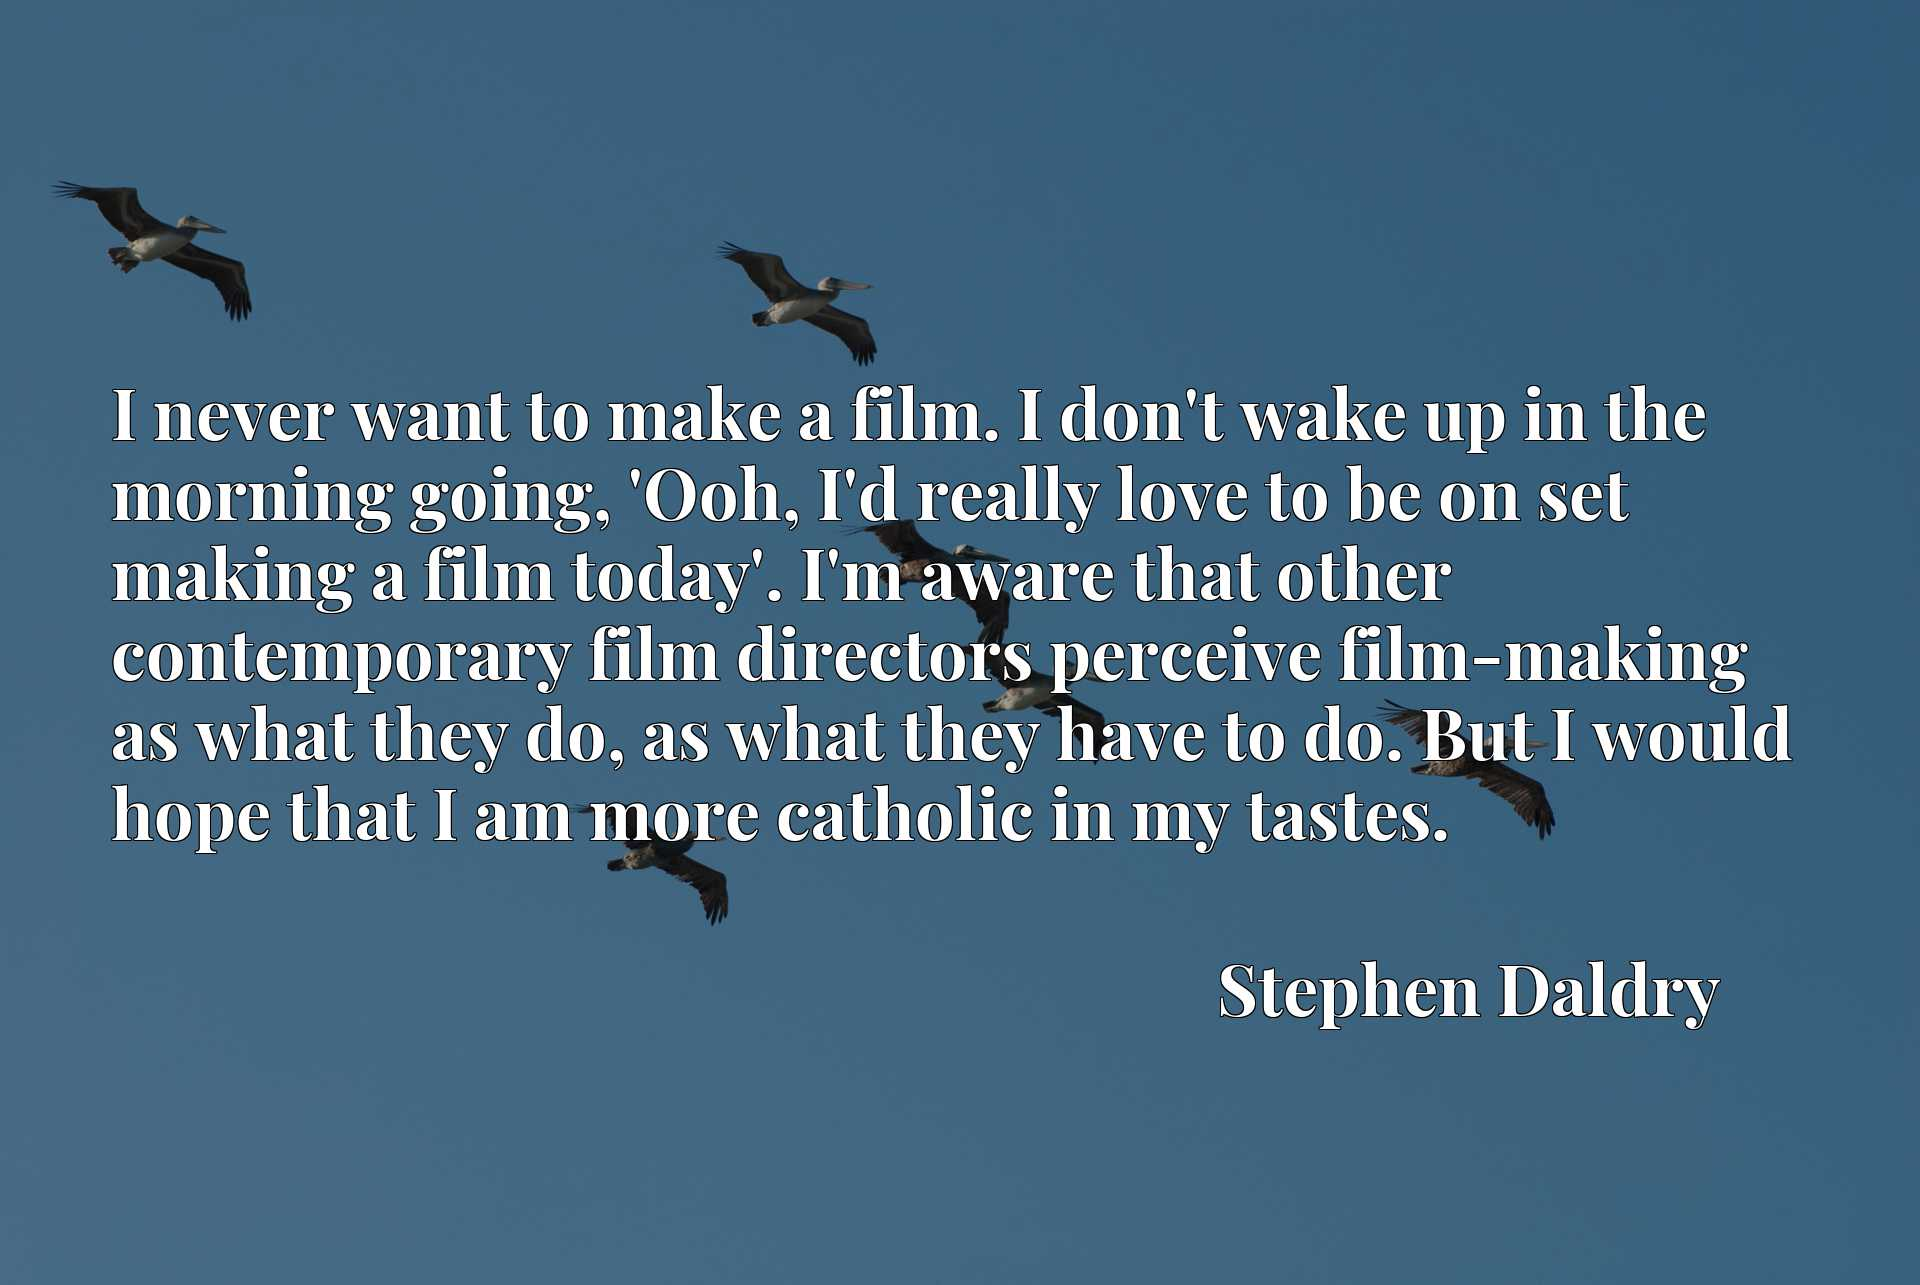 I never want to make a film. I don't wake up in the morning going, 'Ooh, I'd really love to be on set making a film today'. I'm aware that other contemporary film directors perceive film-making as what they do, as what they have to do. But I would hope that I am more catholic in my tastes.